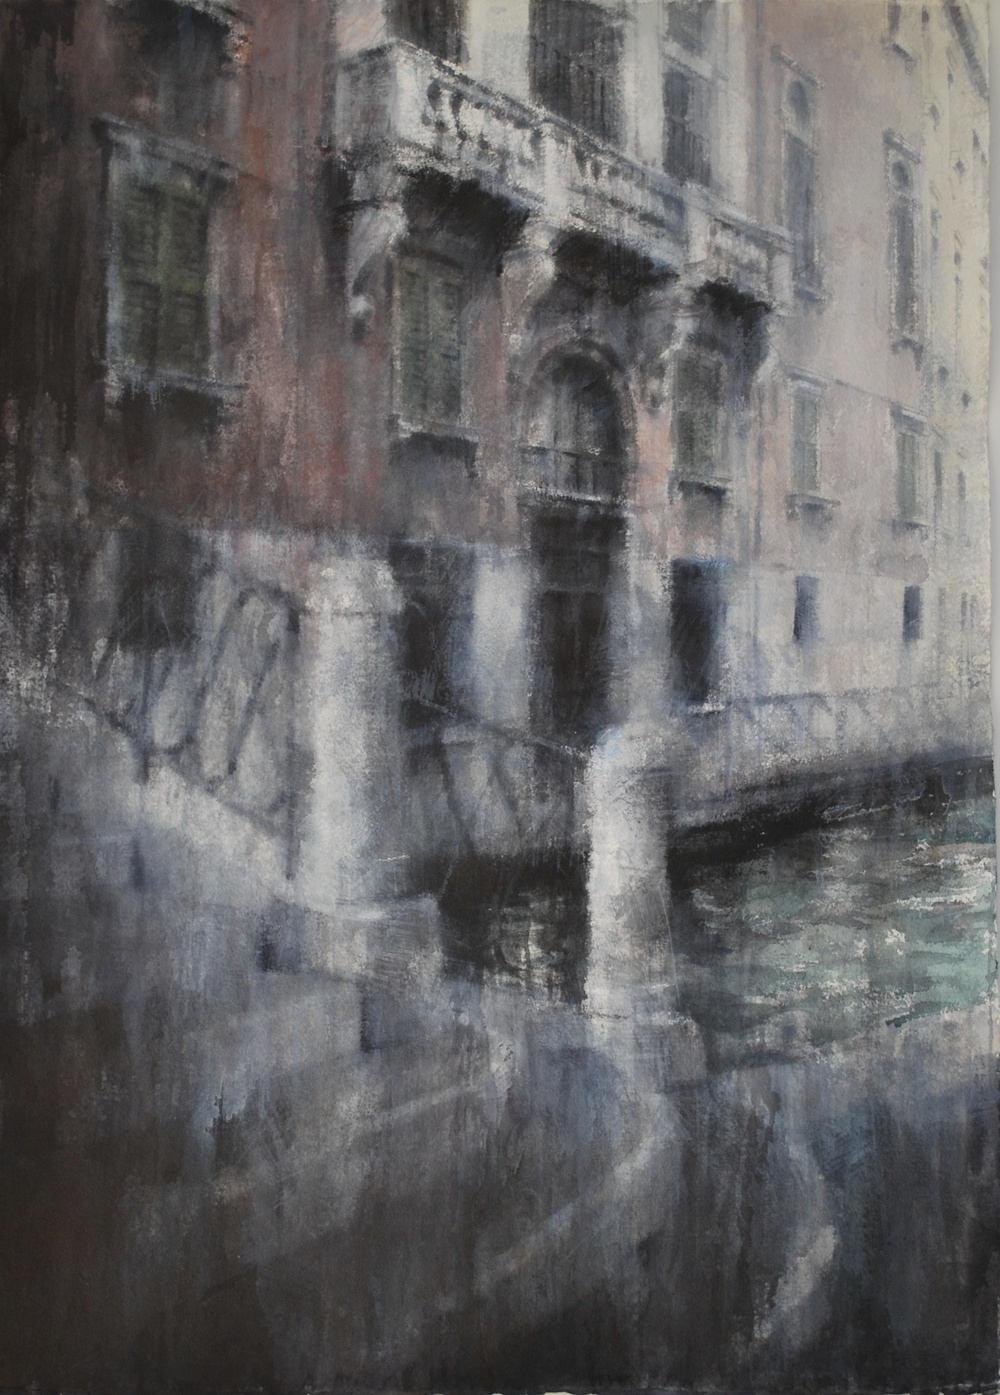 Steps of Venice I, 29x41 inches, SOLD